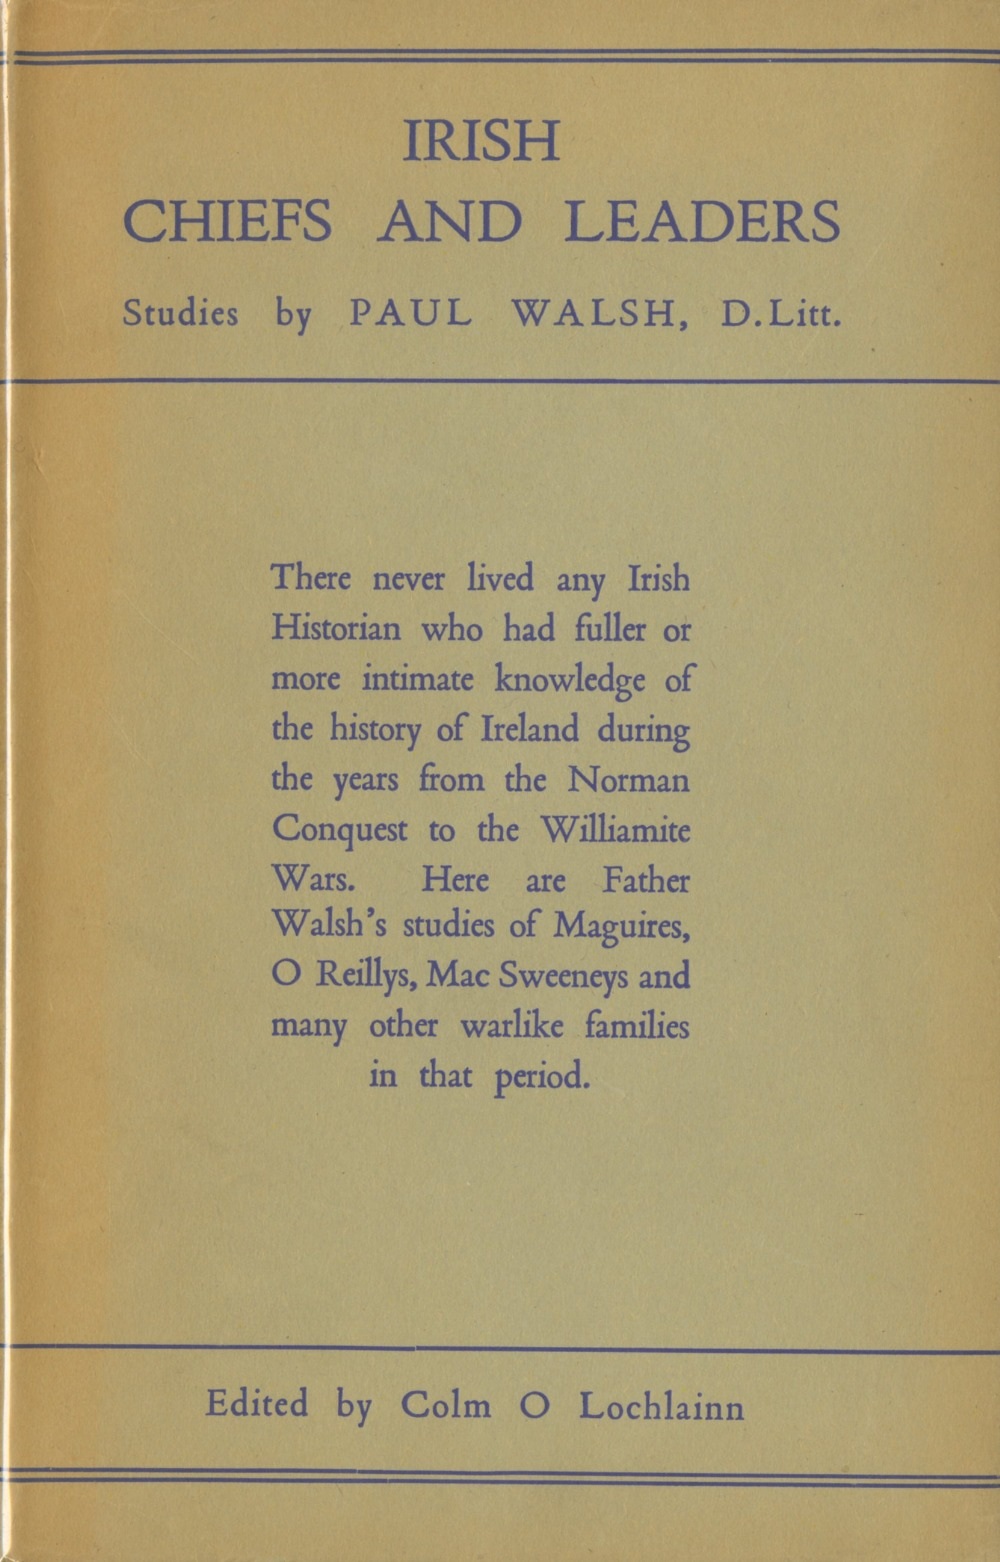 Walsh (Paul) Irish Chiefs and Leaders, D. 1960, also Irish Men of Learning, D. 1947.